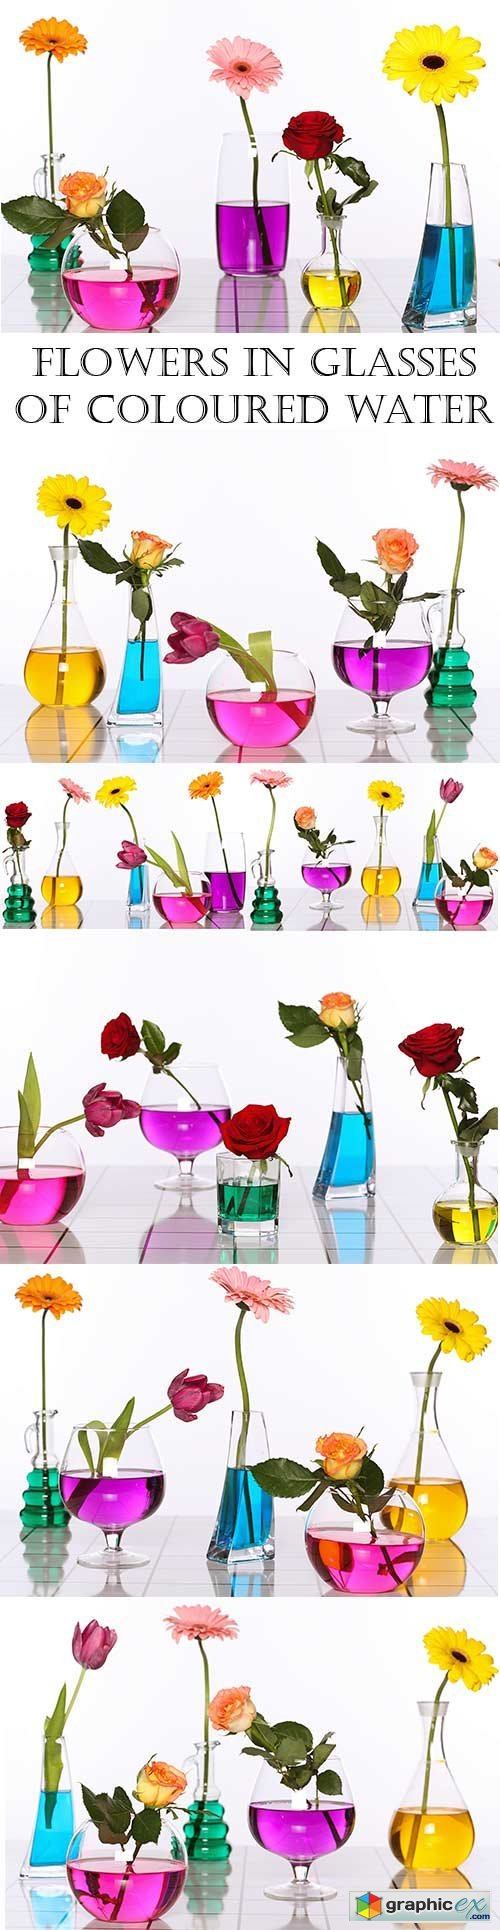 Flowers in glasses of coloured water